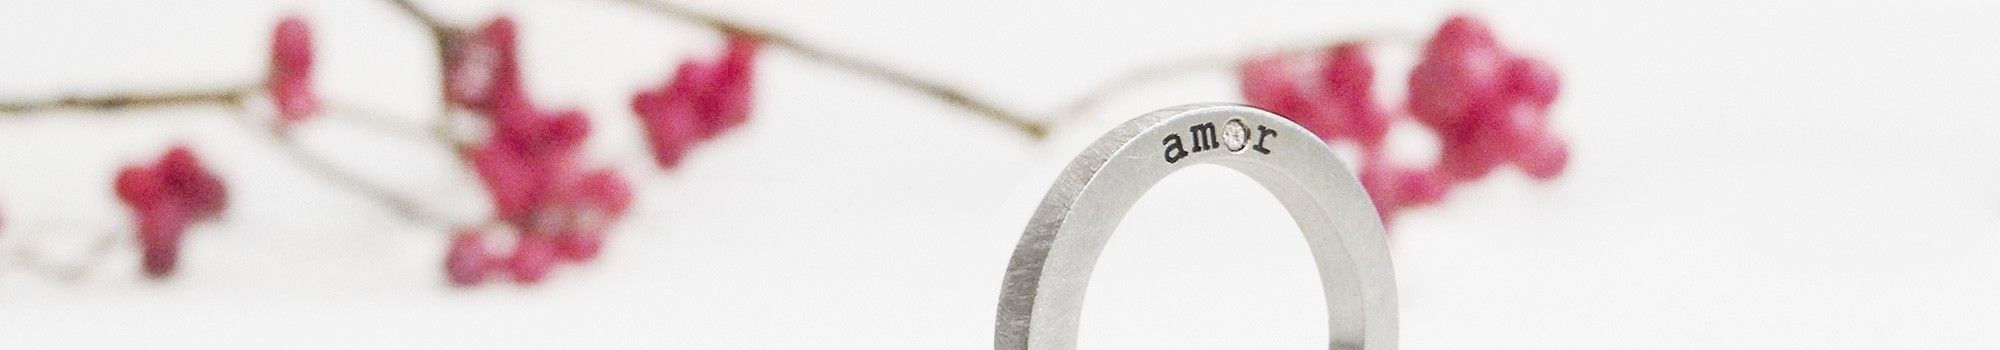 Personalized and custom jewelry